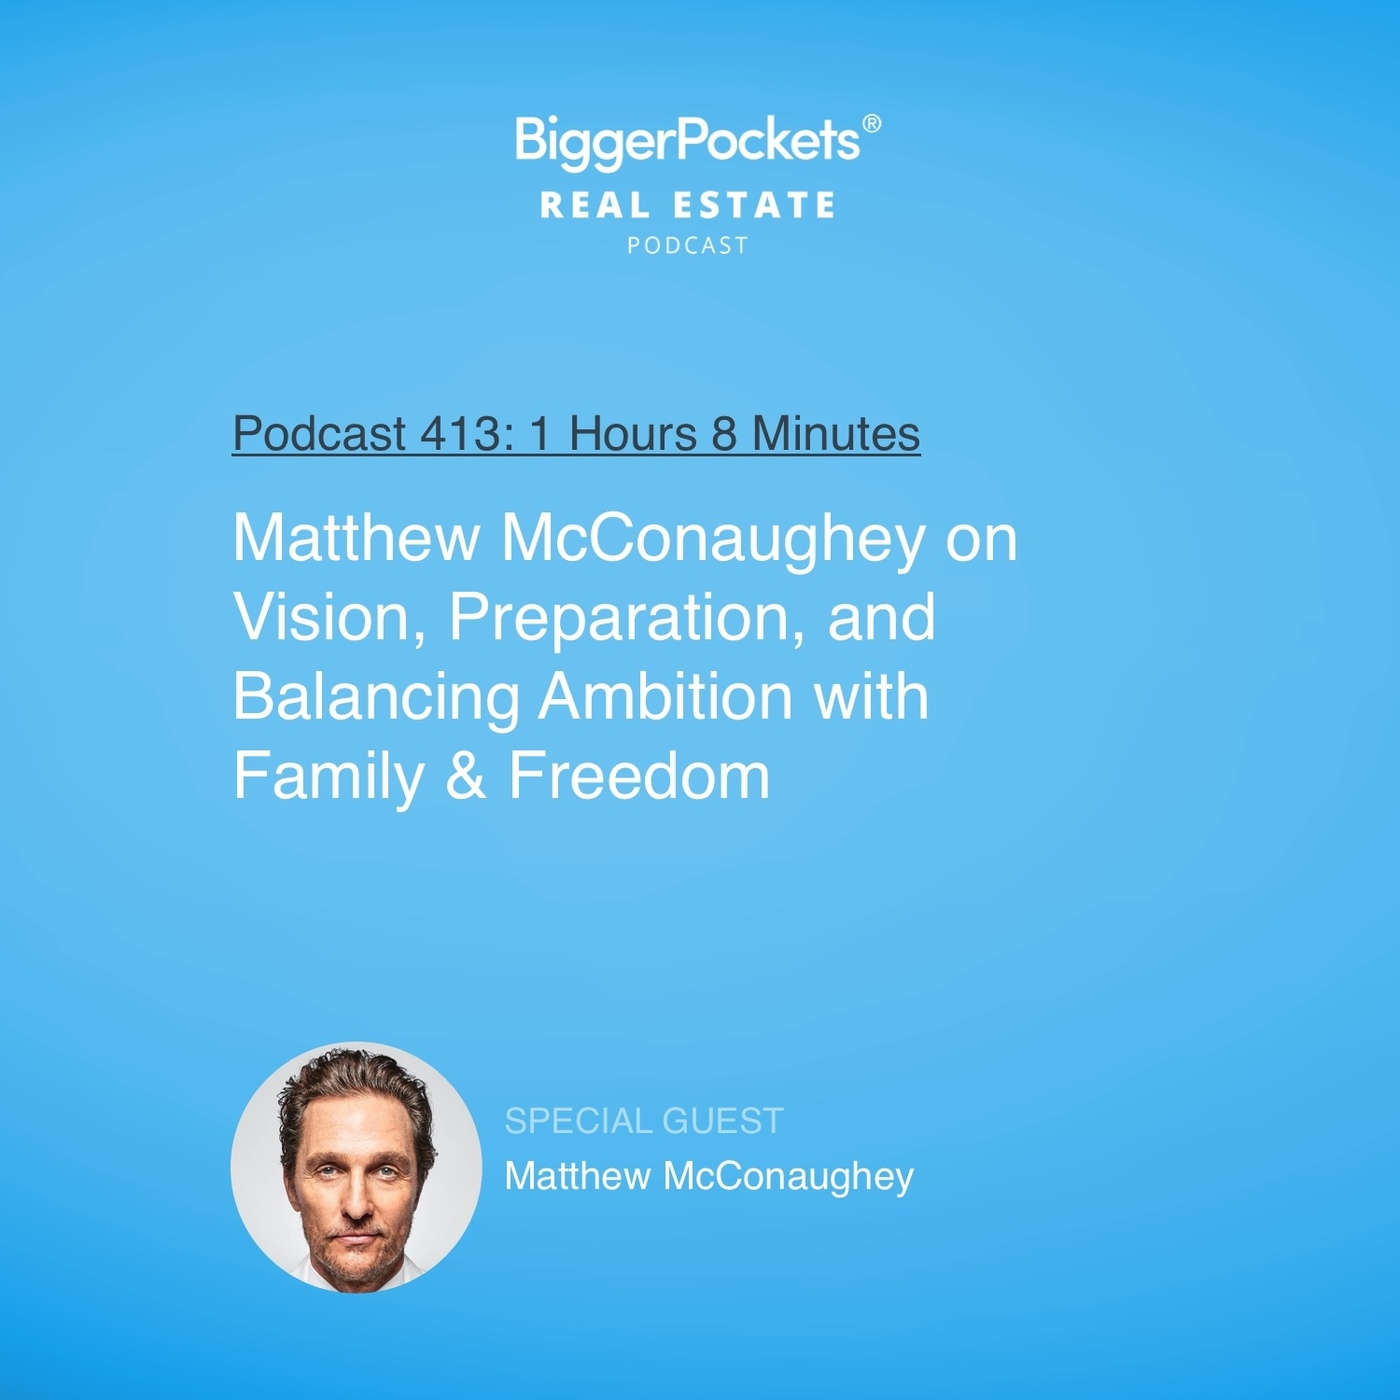 413: Matthew McConaughey on Vision, Preparation, and Balancing Ambition with Family & Freedom